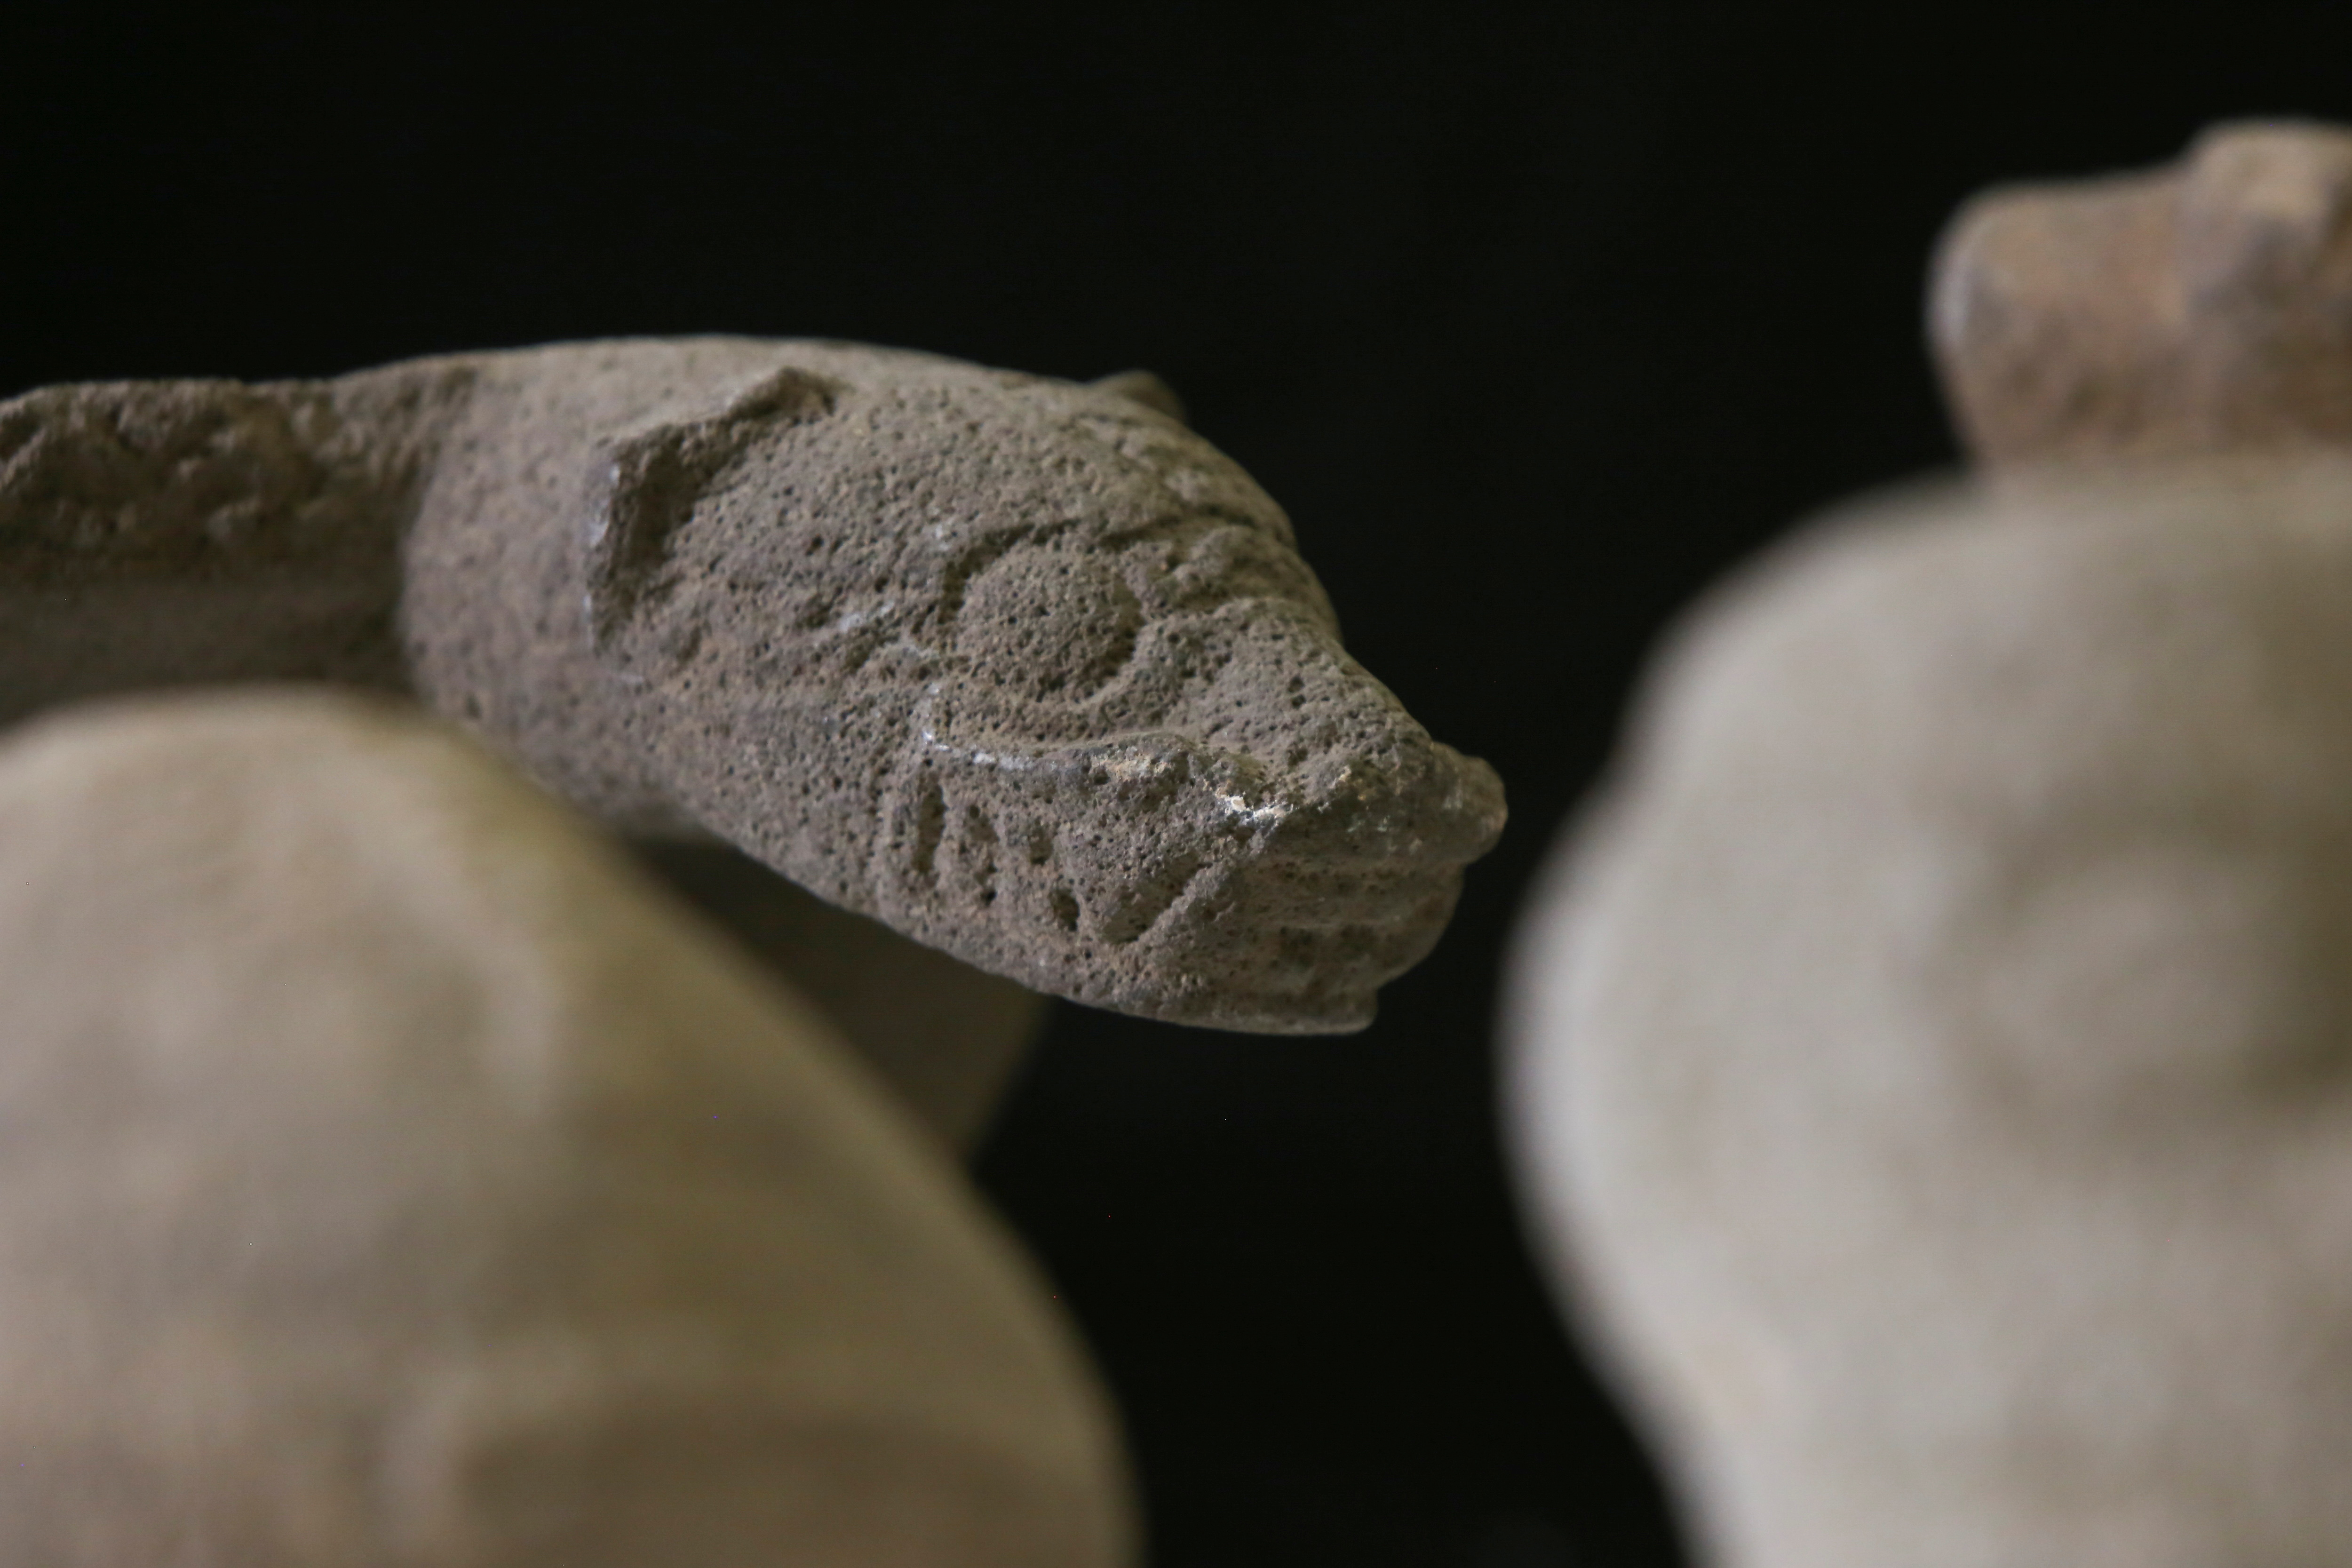 Pre-Columbian artifacts, repatriated from the Brooklyn Museum in New York, U.S., are displayed for its classification by archaeologists at the facilities of the Costa Rica's National Museum, in Pavas, Costa Rica July 2, 2021. Picture taken  July 2, 2021. REUTERS/Mayela Lopez